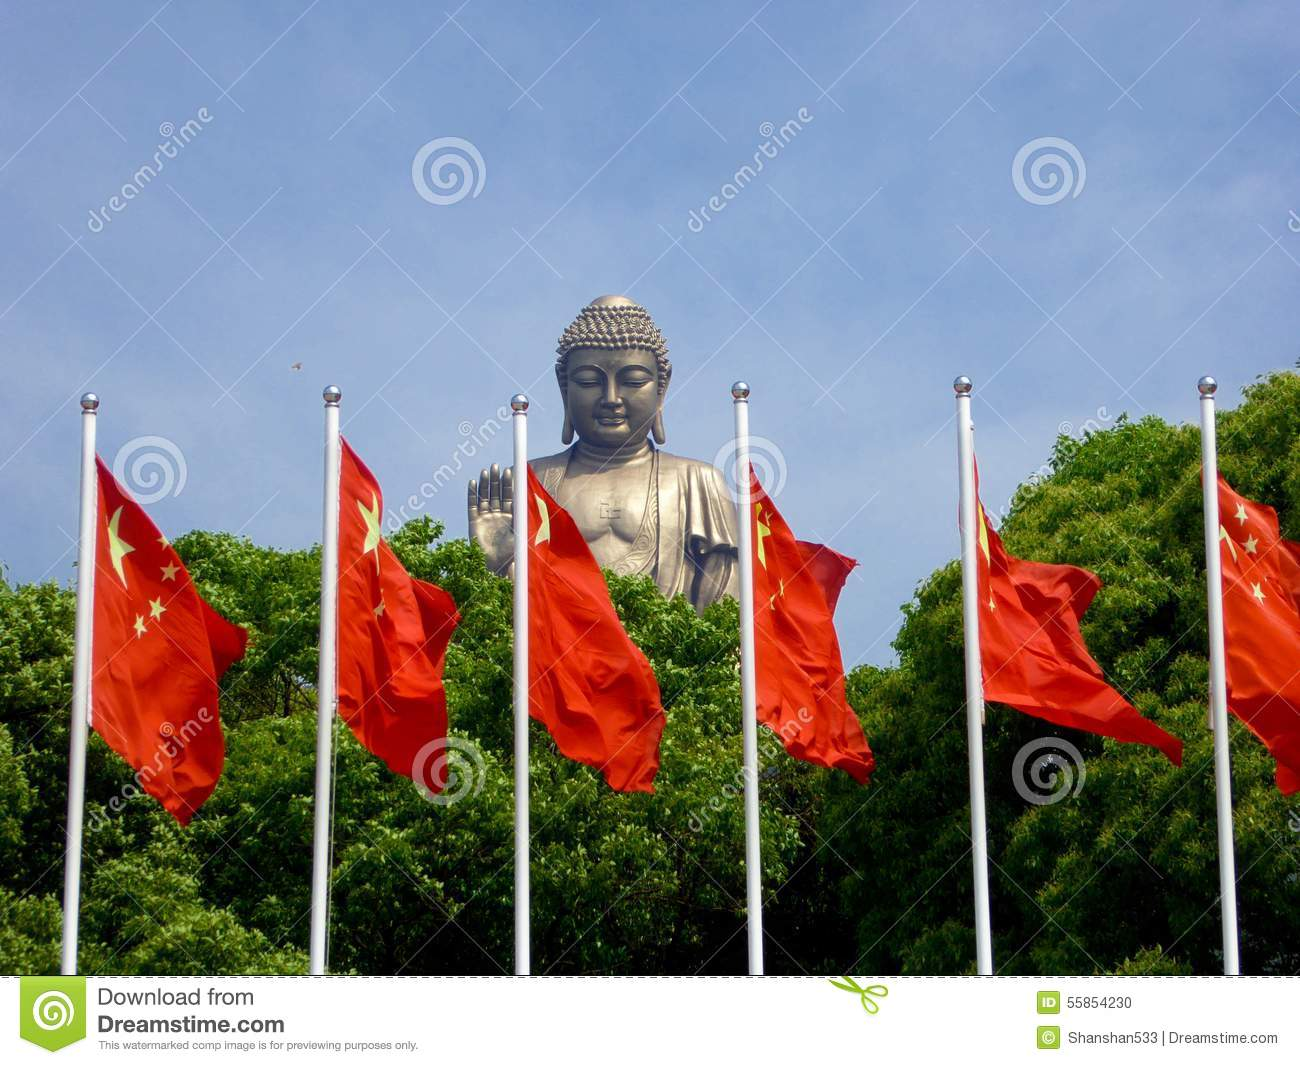 Grand Buddha Statue Lingshan Flags Front Giant Bronze Blue Sky White Clouds Background Row Chinese At China